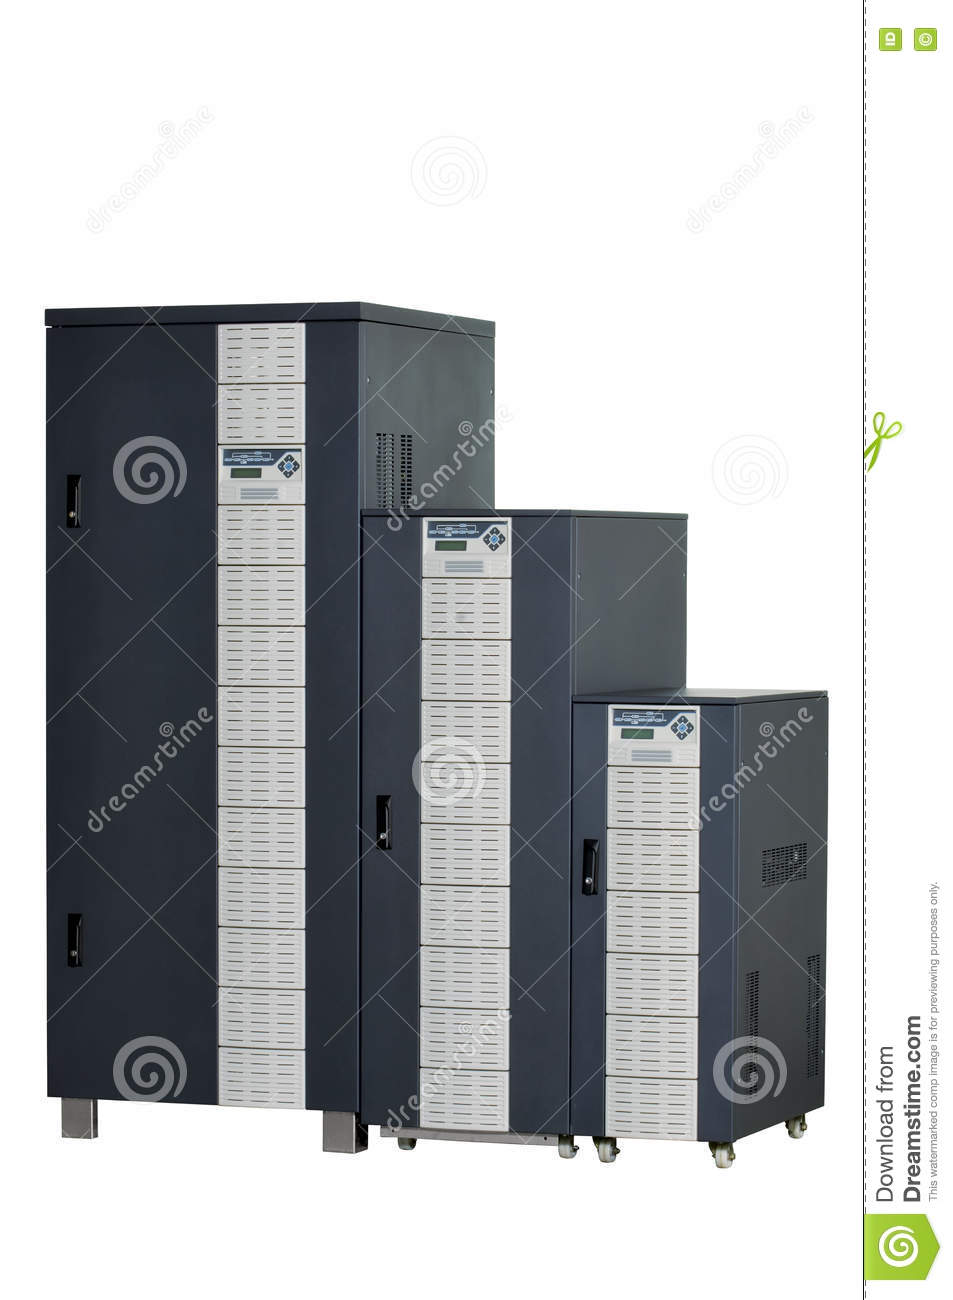 medium resolution of electrical ups control panel enclosure its door closed could be circuit breaker fuse box server power source other 79177195 jpg